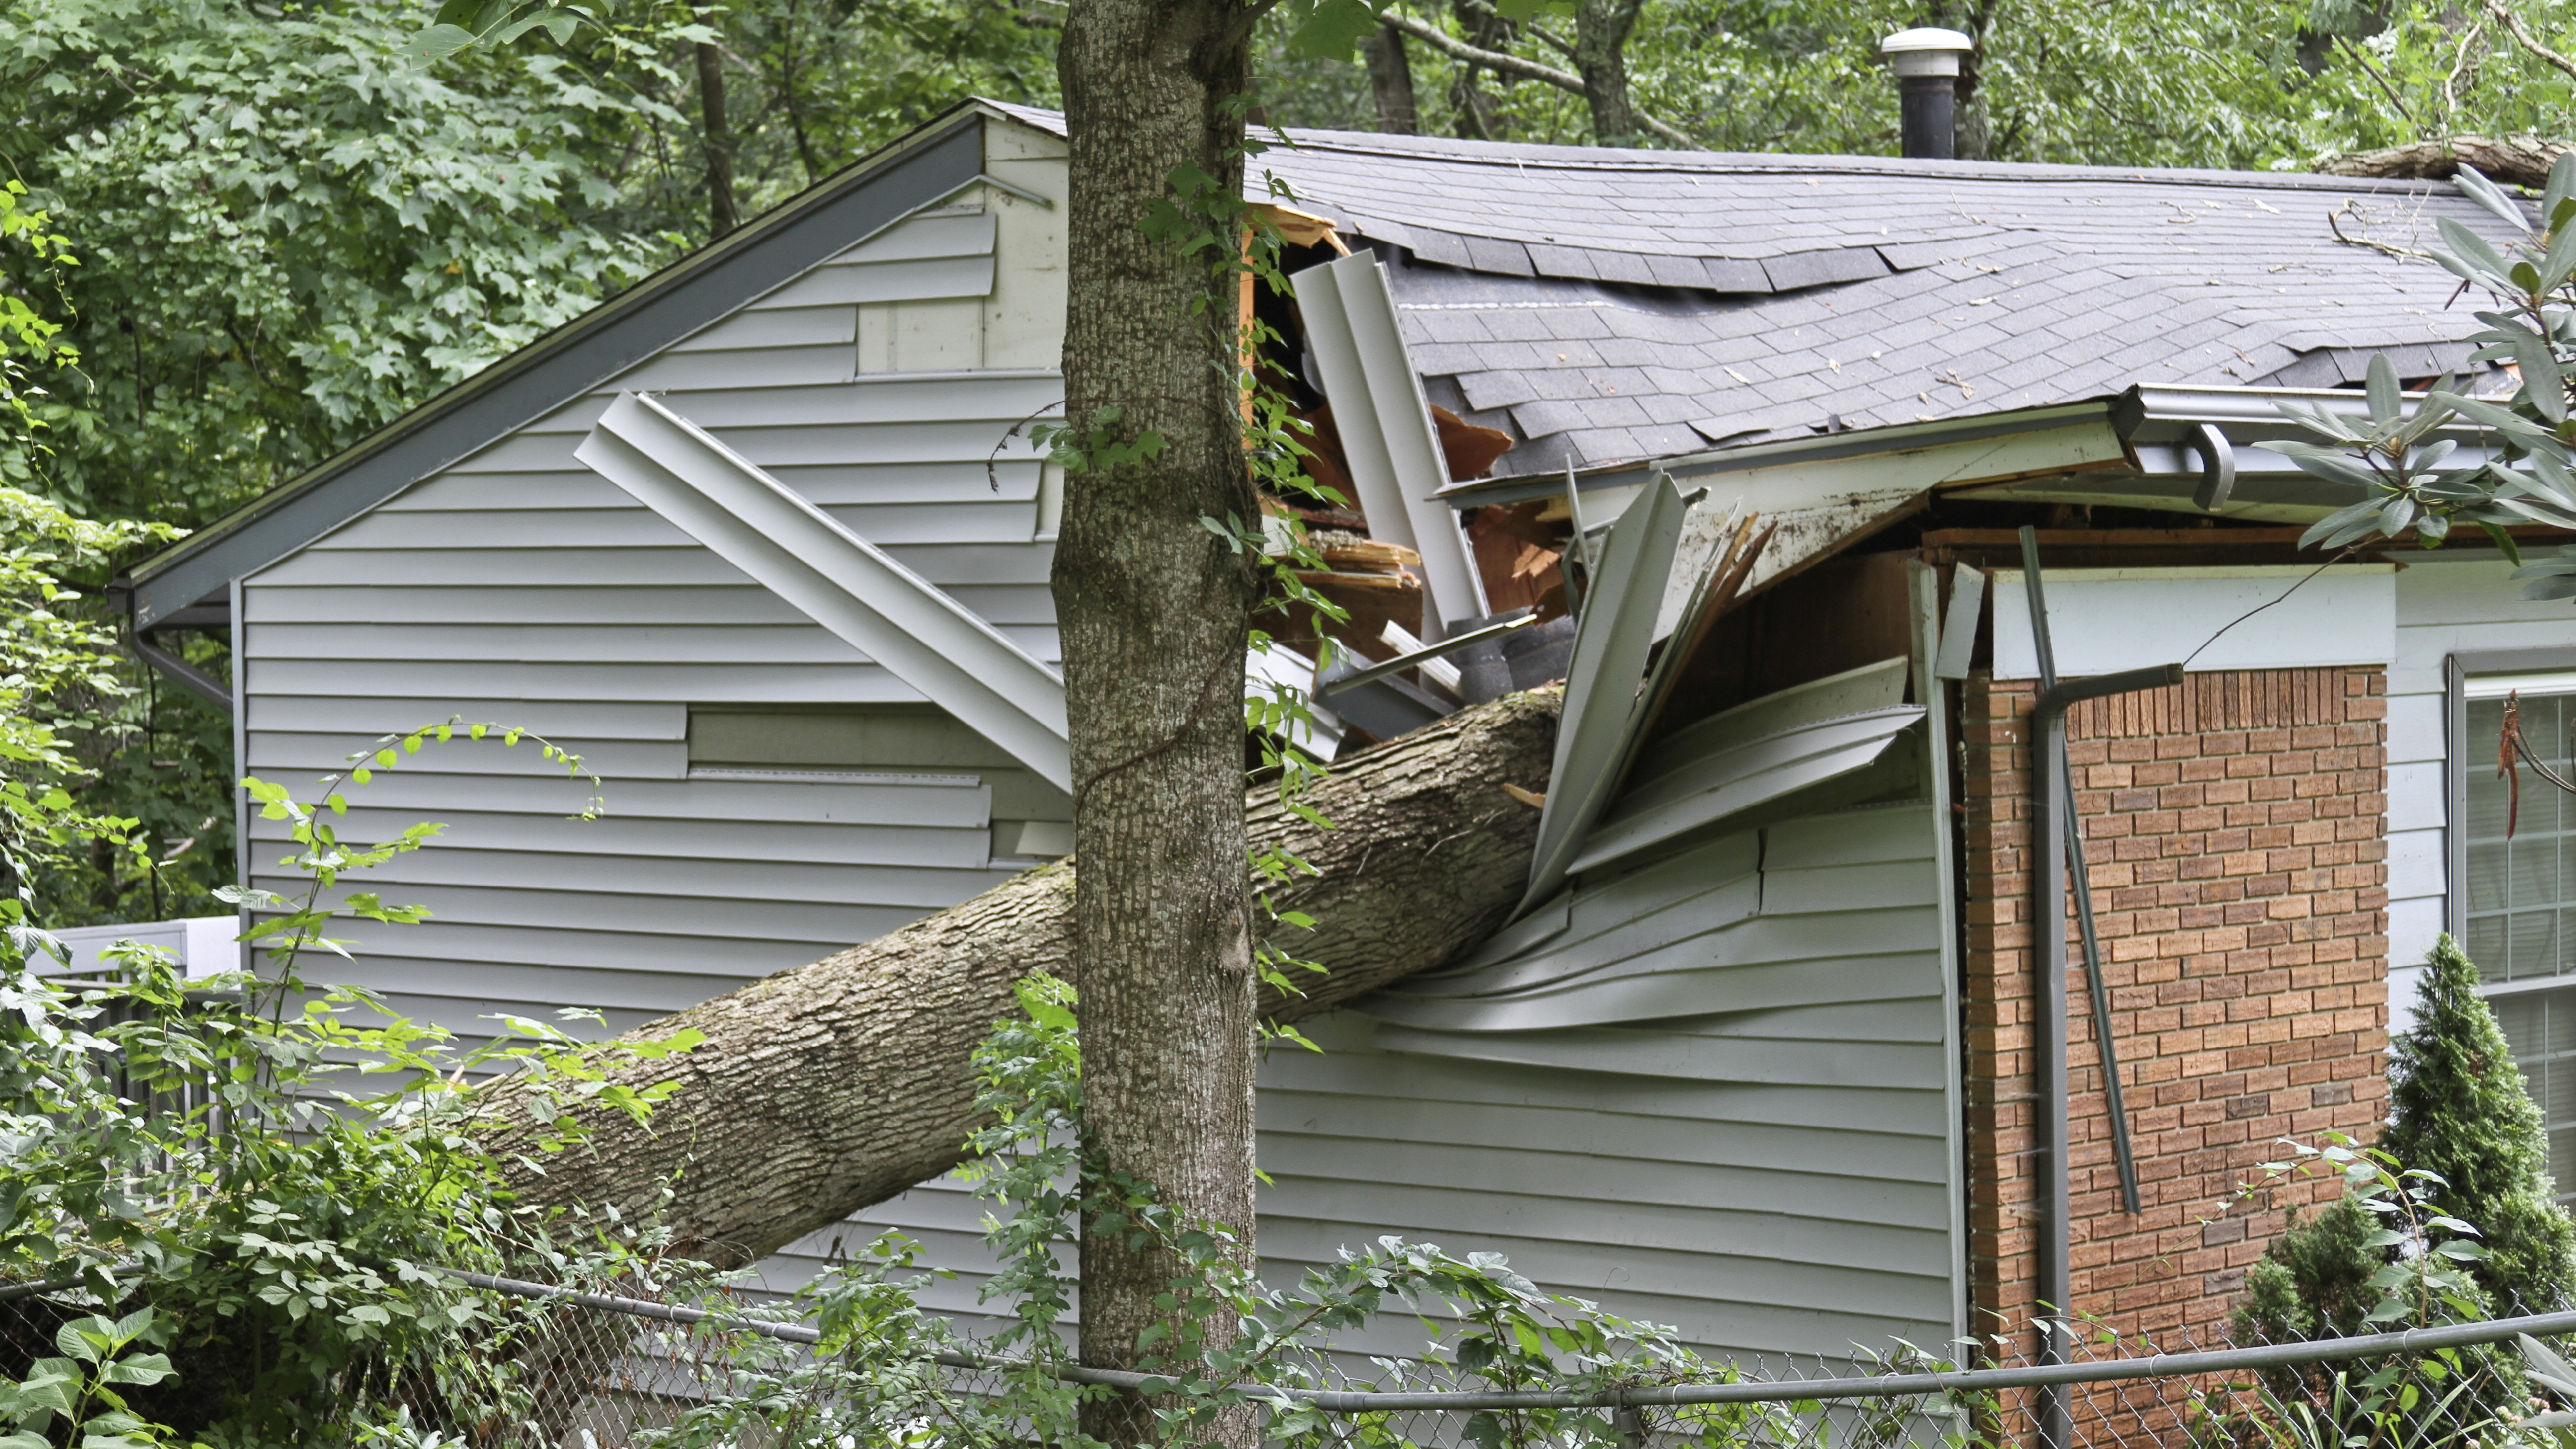 image of a fallen tree on the roof of a house.